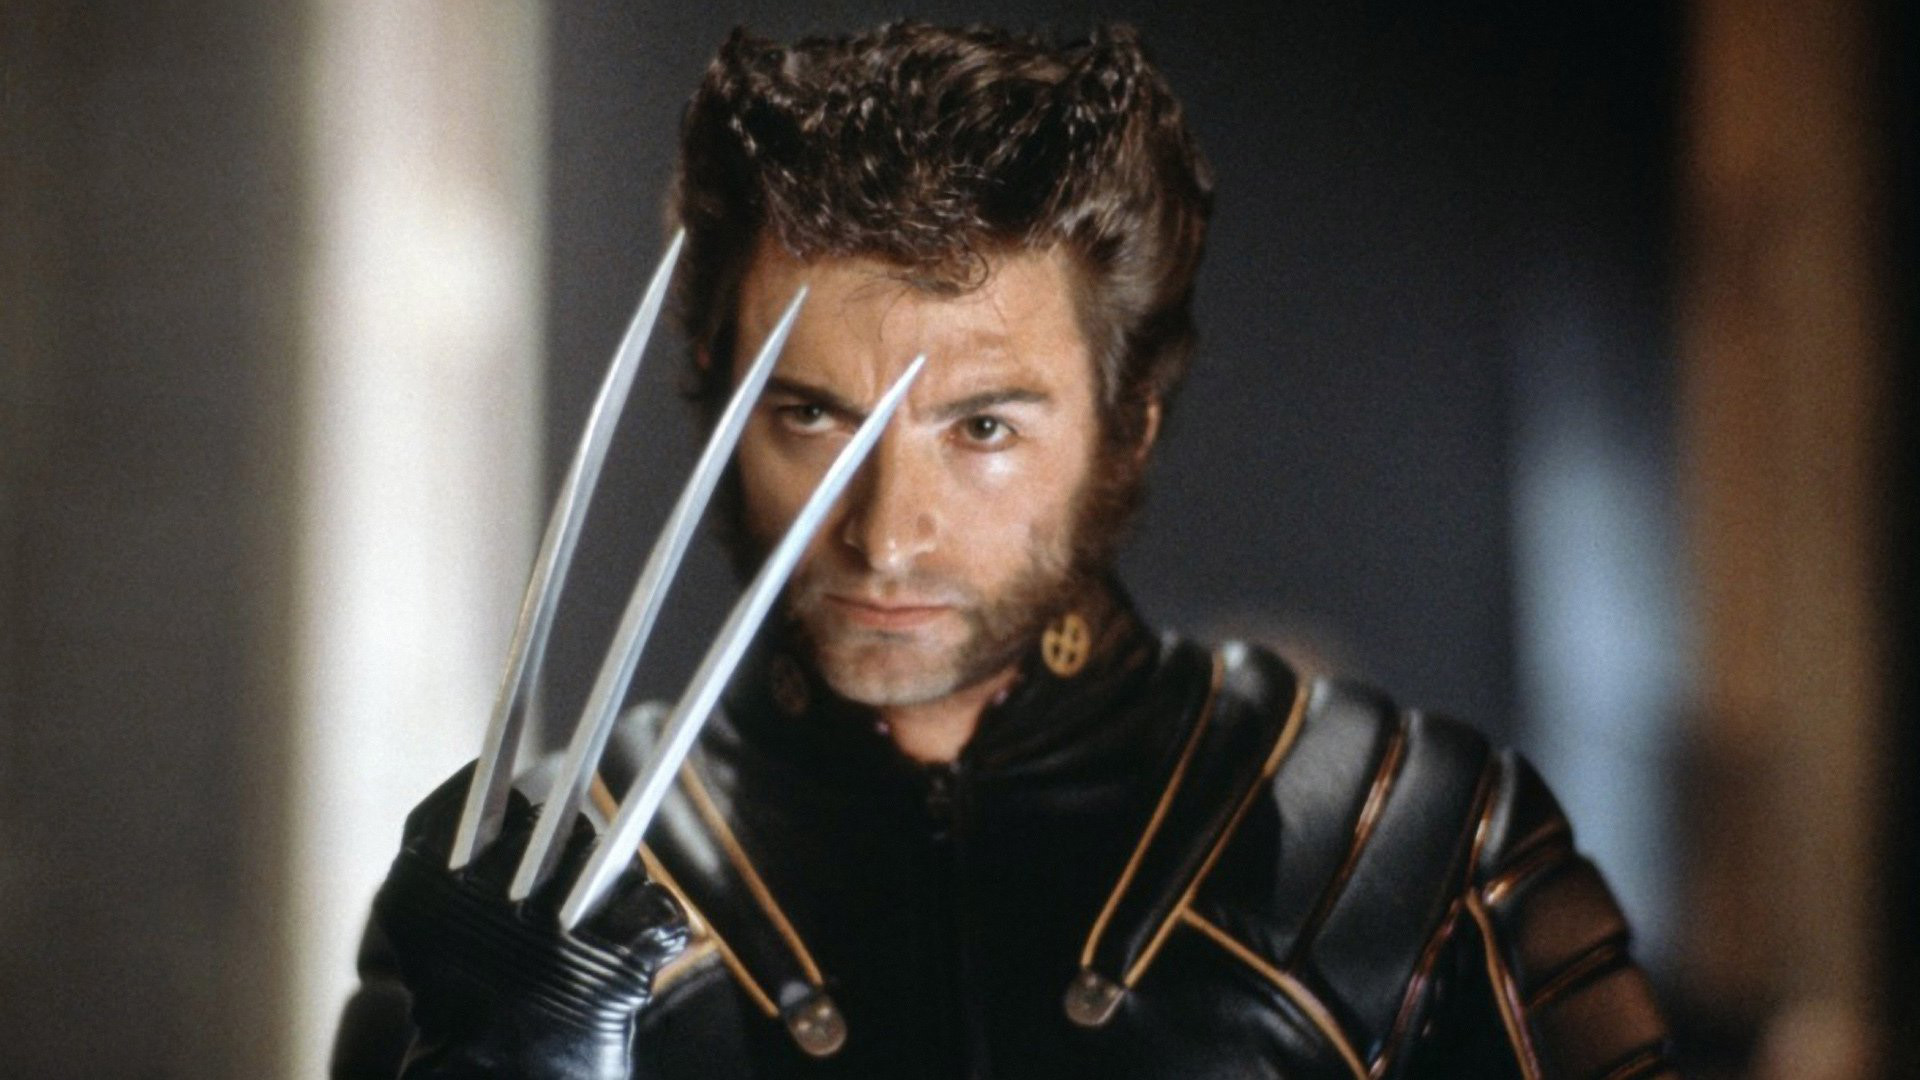 https://celebritycontent.com/2020/08/25/jimmy-fallon-surprised-hugh-jackman-with-part-of-his-wolverine-audition-from-1999-the-real-stan-lee/